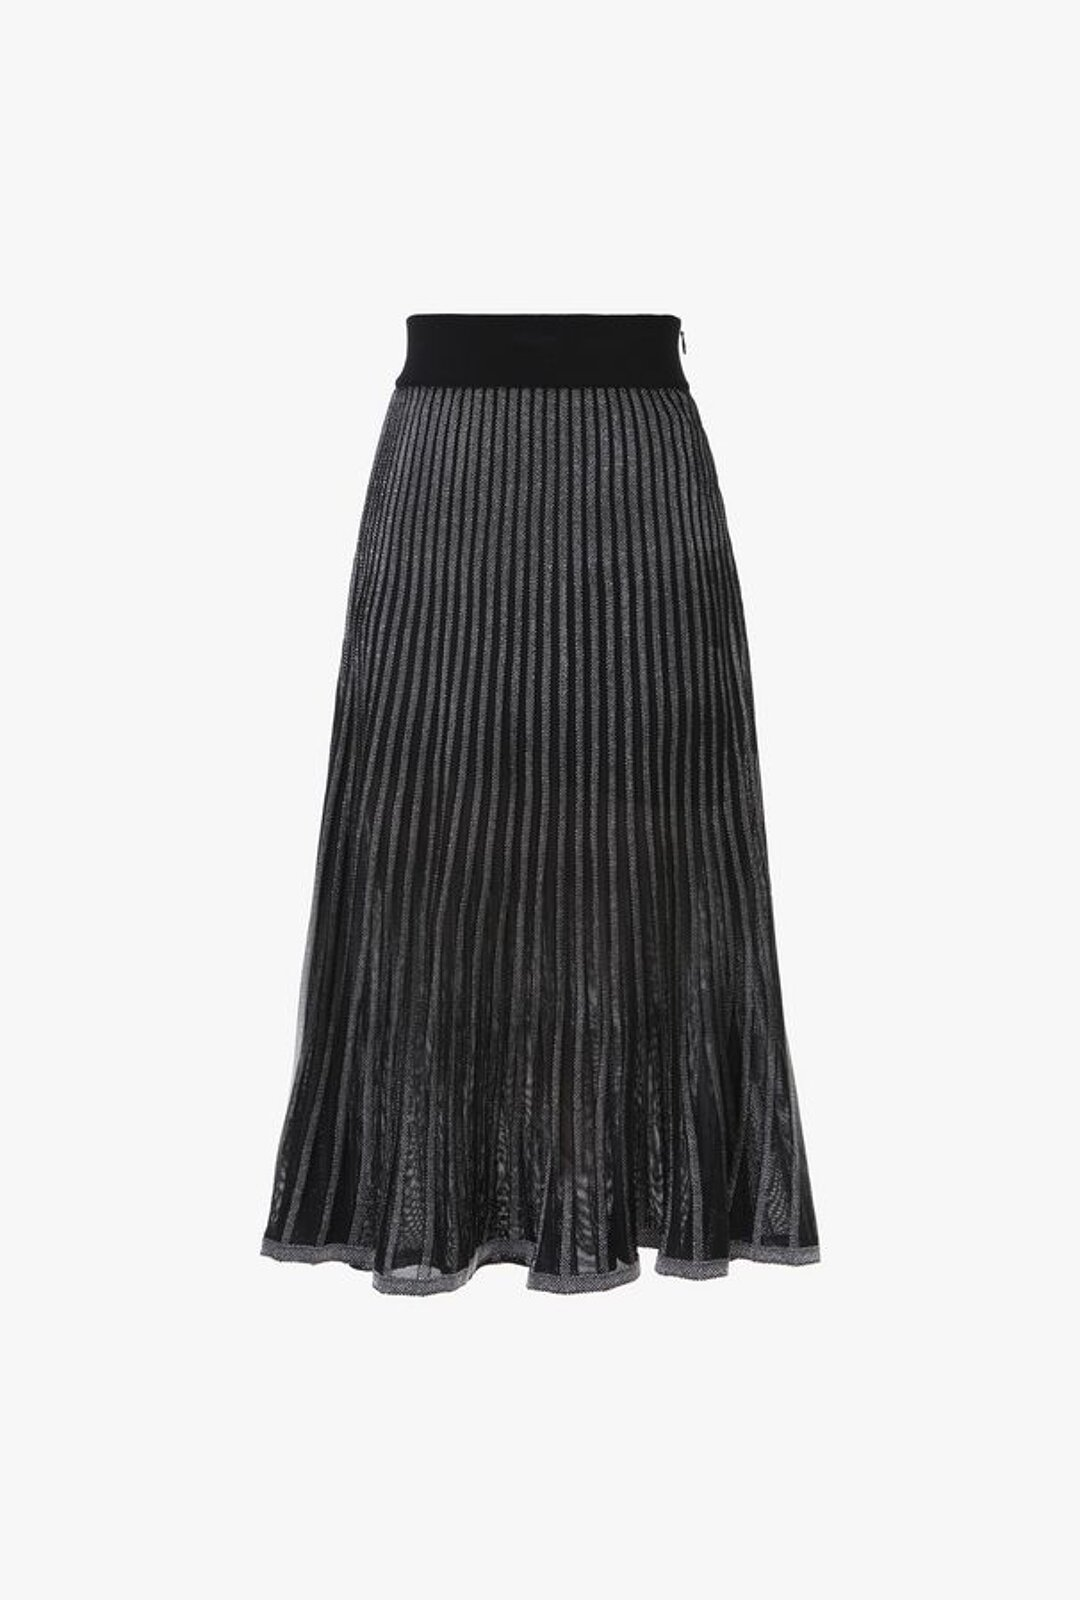 Black And Silver Pleated Midi Skirt With Metallic Effect Stripes - Balmain